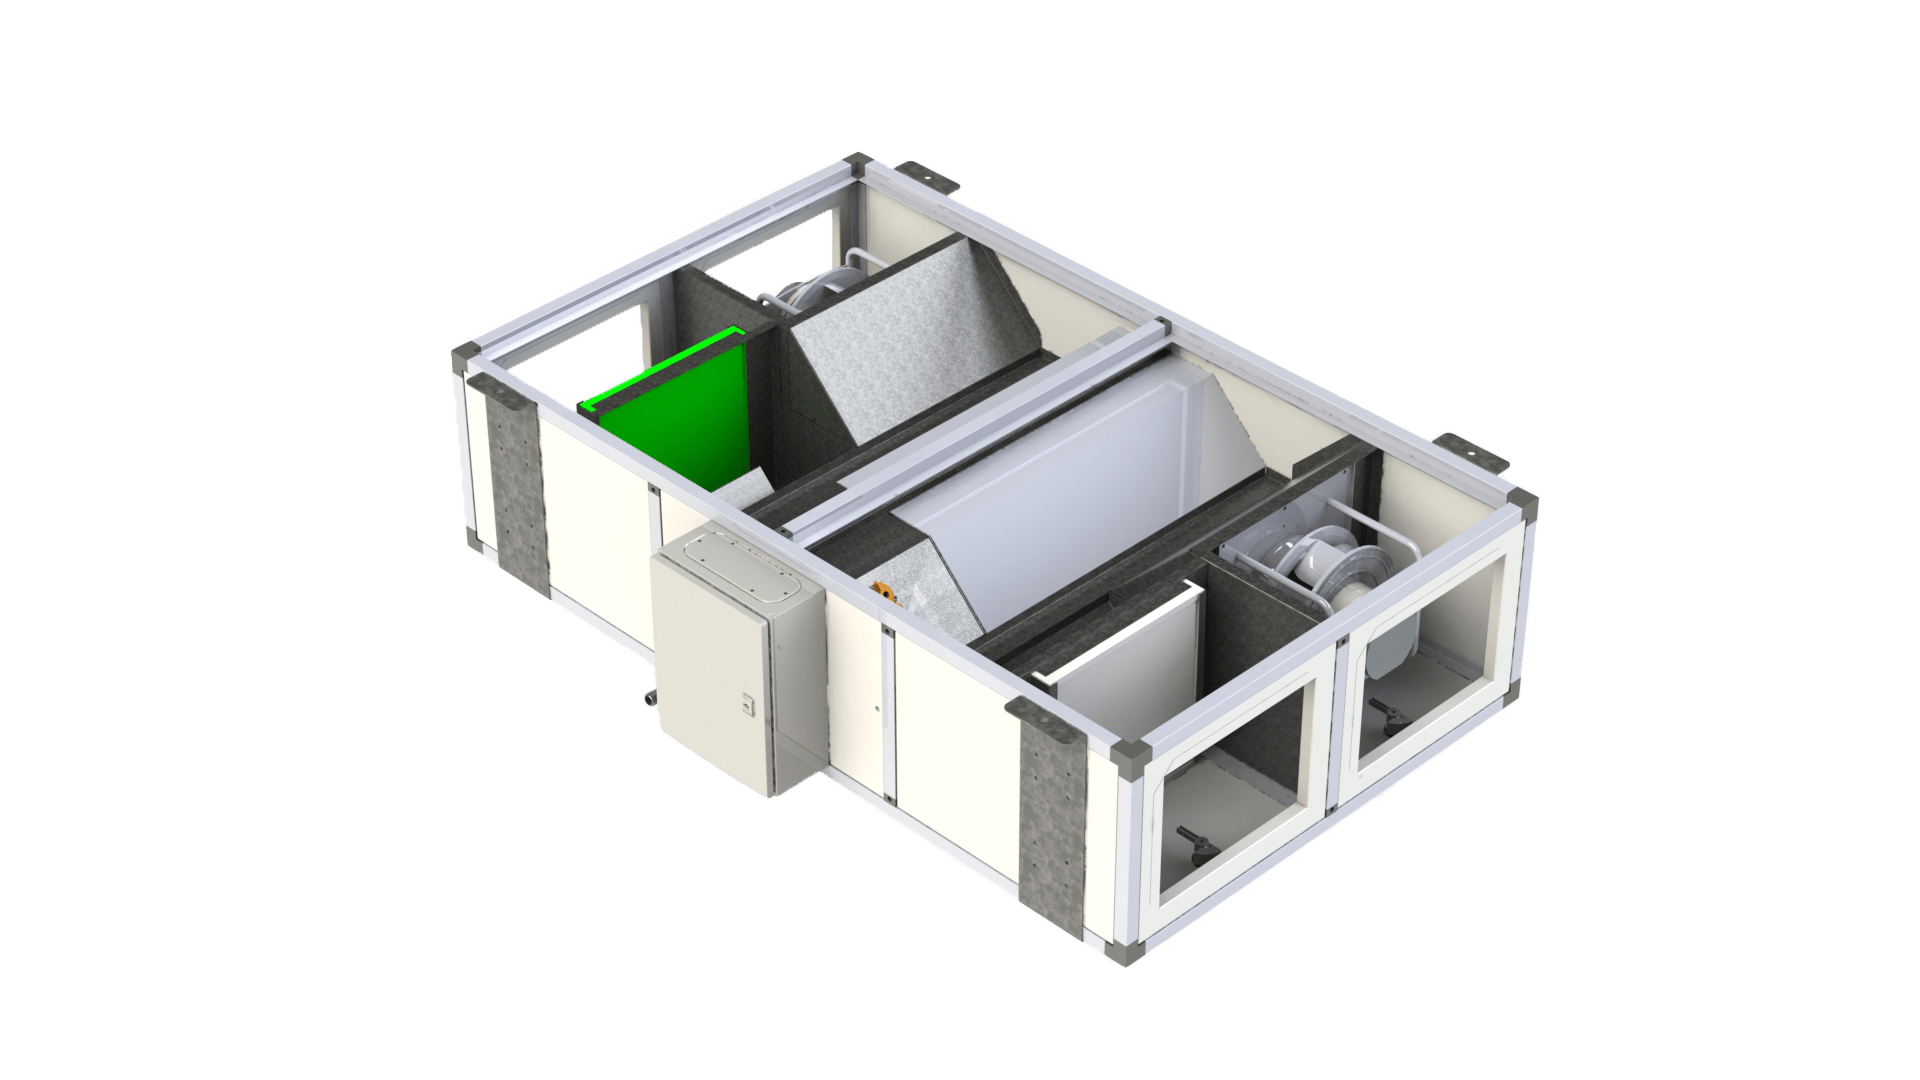 Ventum System Overview